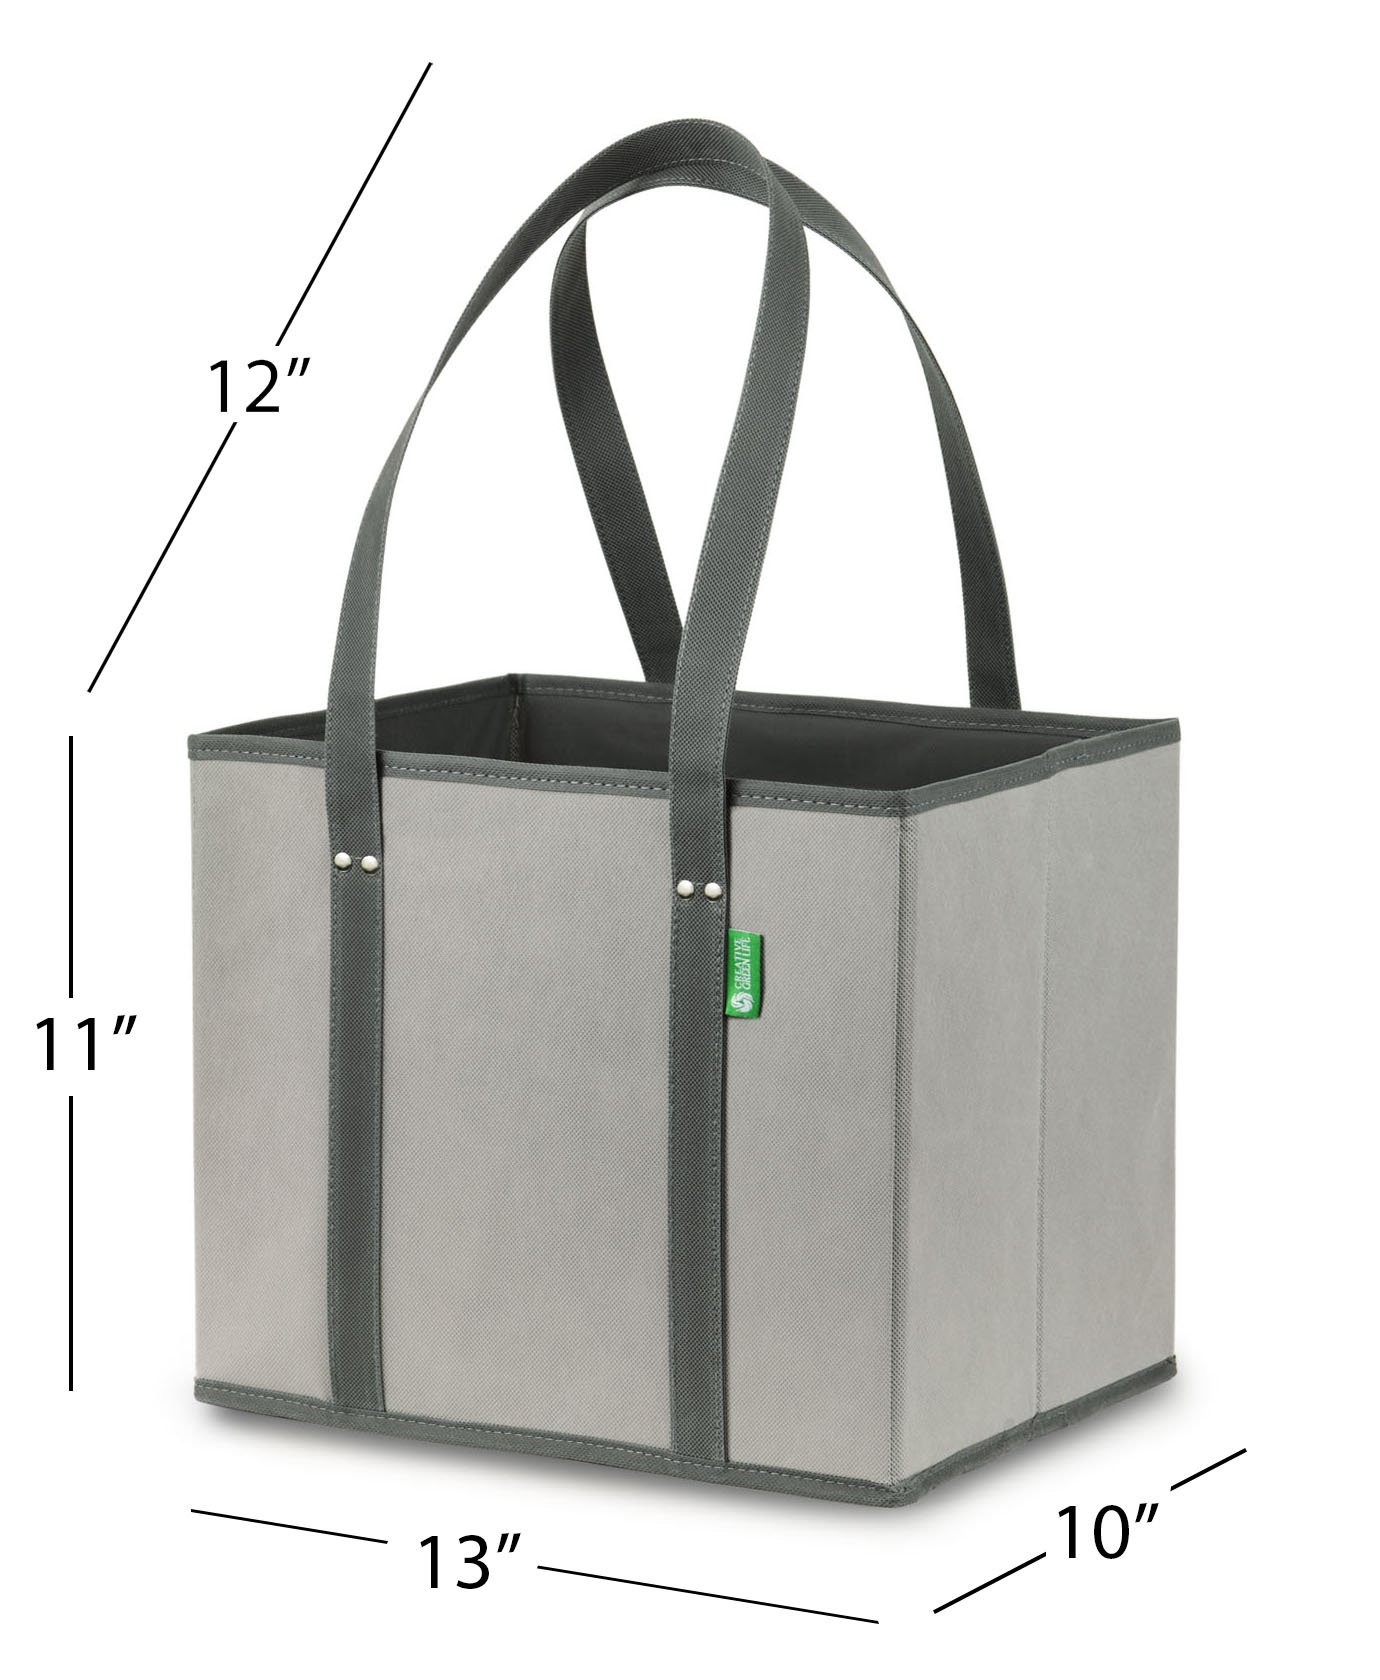 Reusable Grocery Shopping Box Bags (3 Pack - Gray). Large, Premium Quality Heavy Duty Tote Bag Set with Extra Long Handles & Reinforced Bottom. Foldable, Collapsible, Durable & Eco Friendly by Creative Green Life (Image #5)